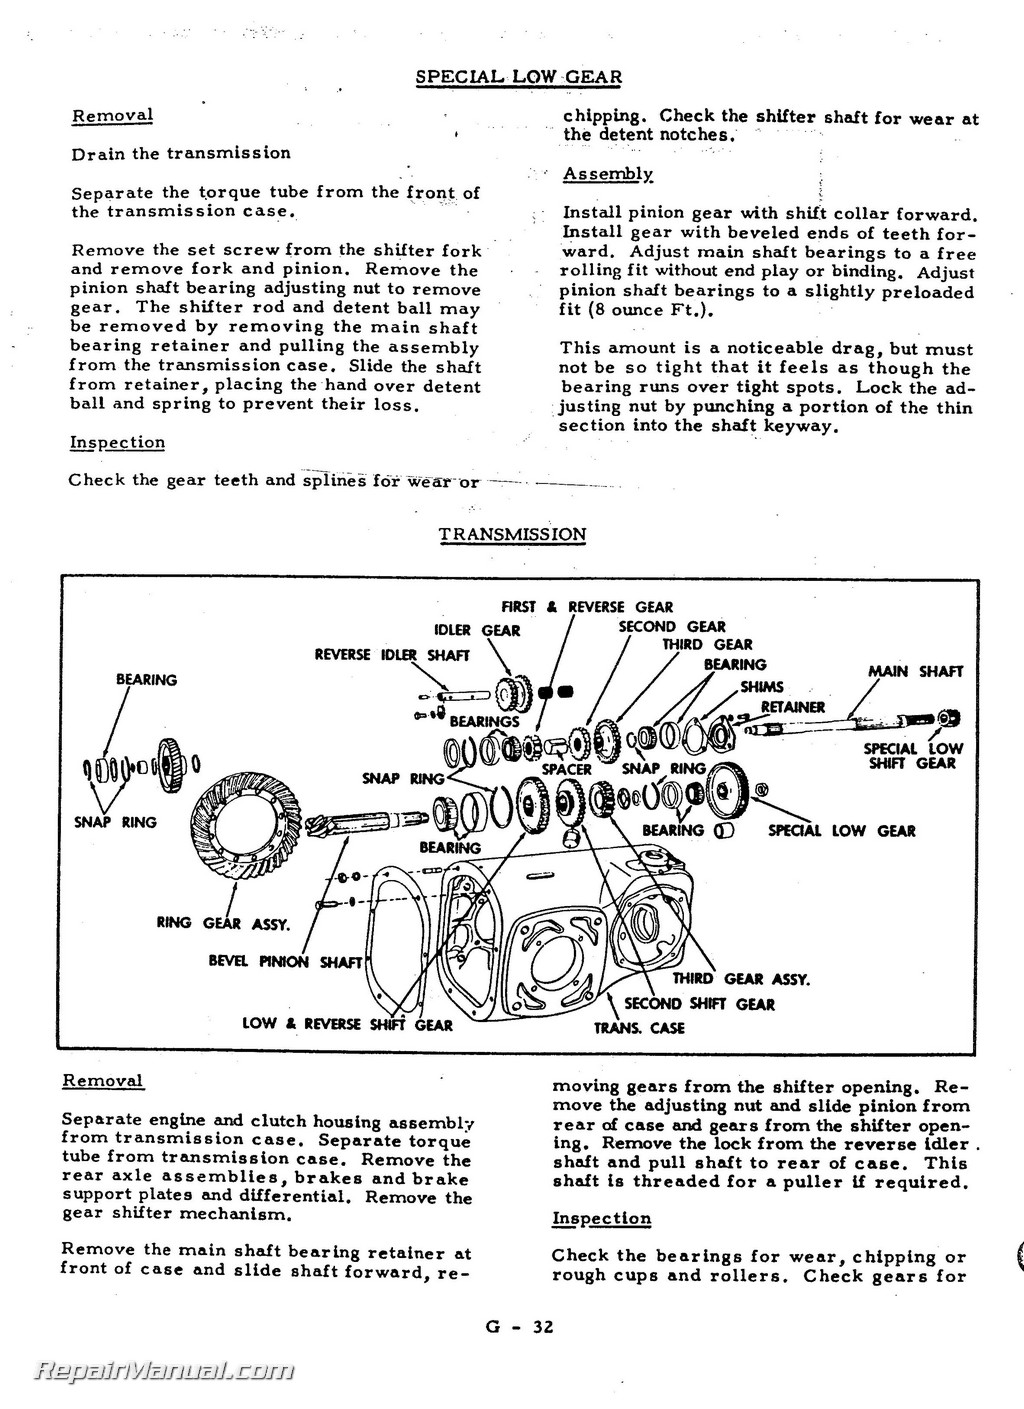 allis chalmers c wiring diagram allis image wiring wiring diagram allis chalmers g wiring image on allis chalmers c wiring diagram